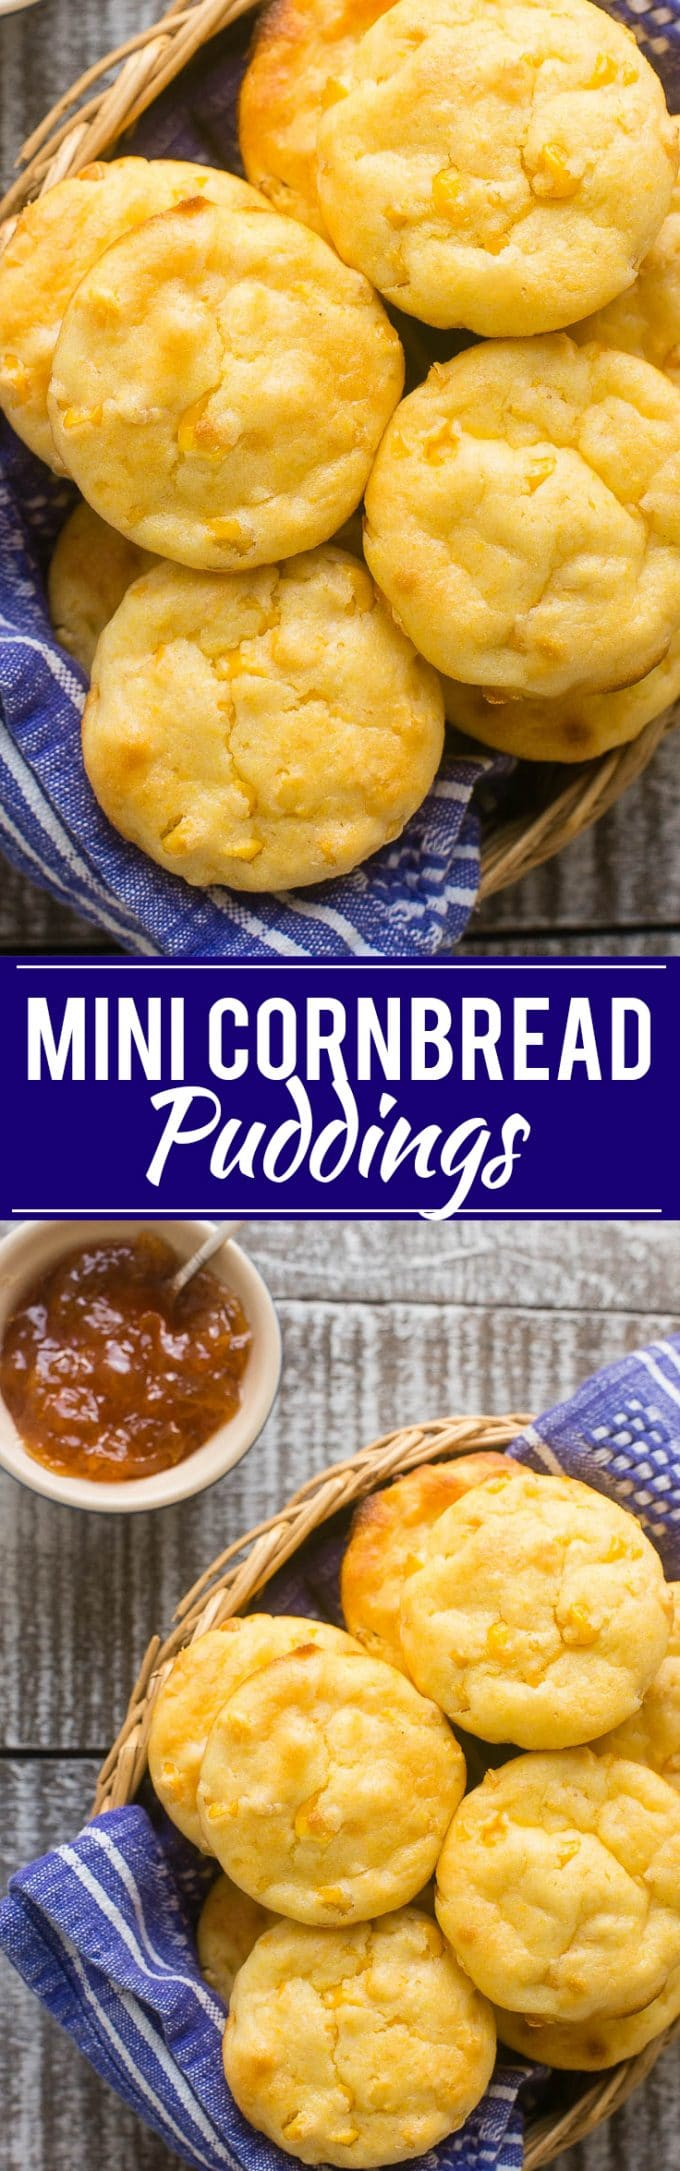 Mini Cornbread Pudding Recipe | Best Cornbread Muffins | Easy Cornbread Muffins